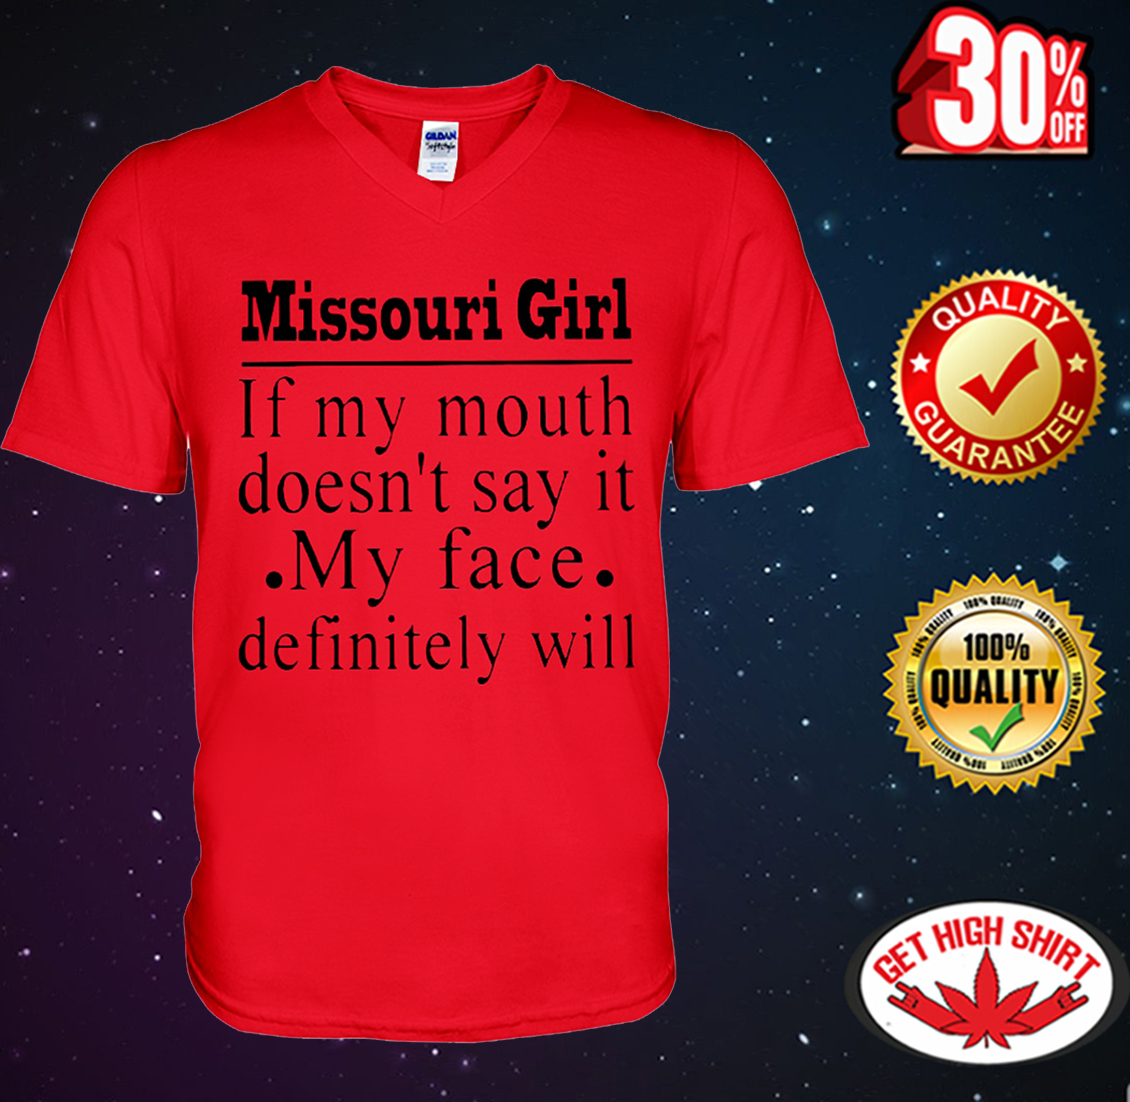 Missouri girl if my mouth doesn't say it my face definitely will v-neck